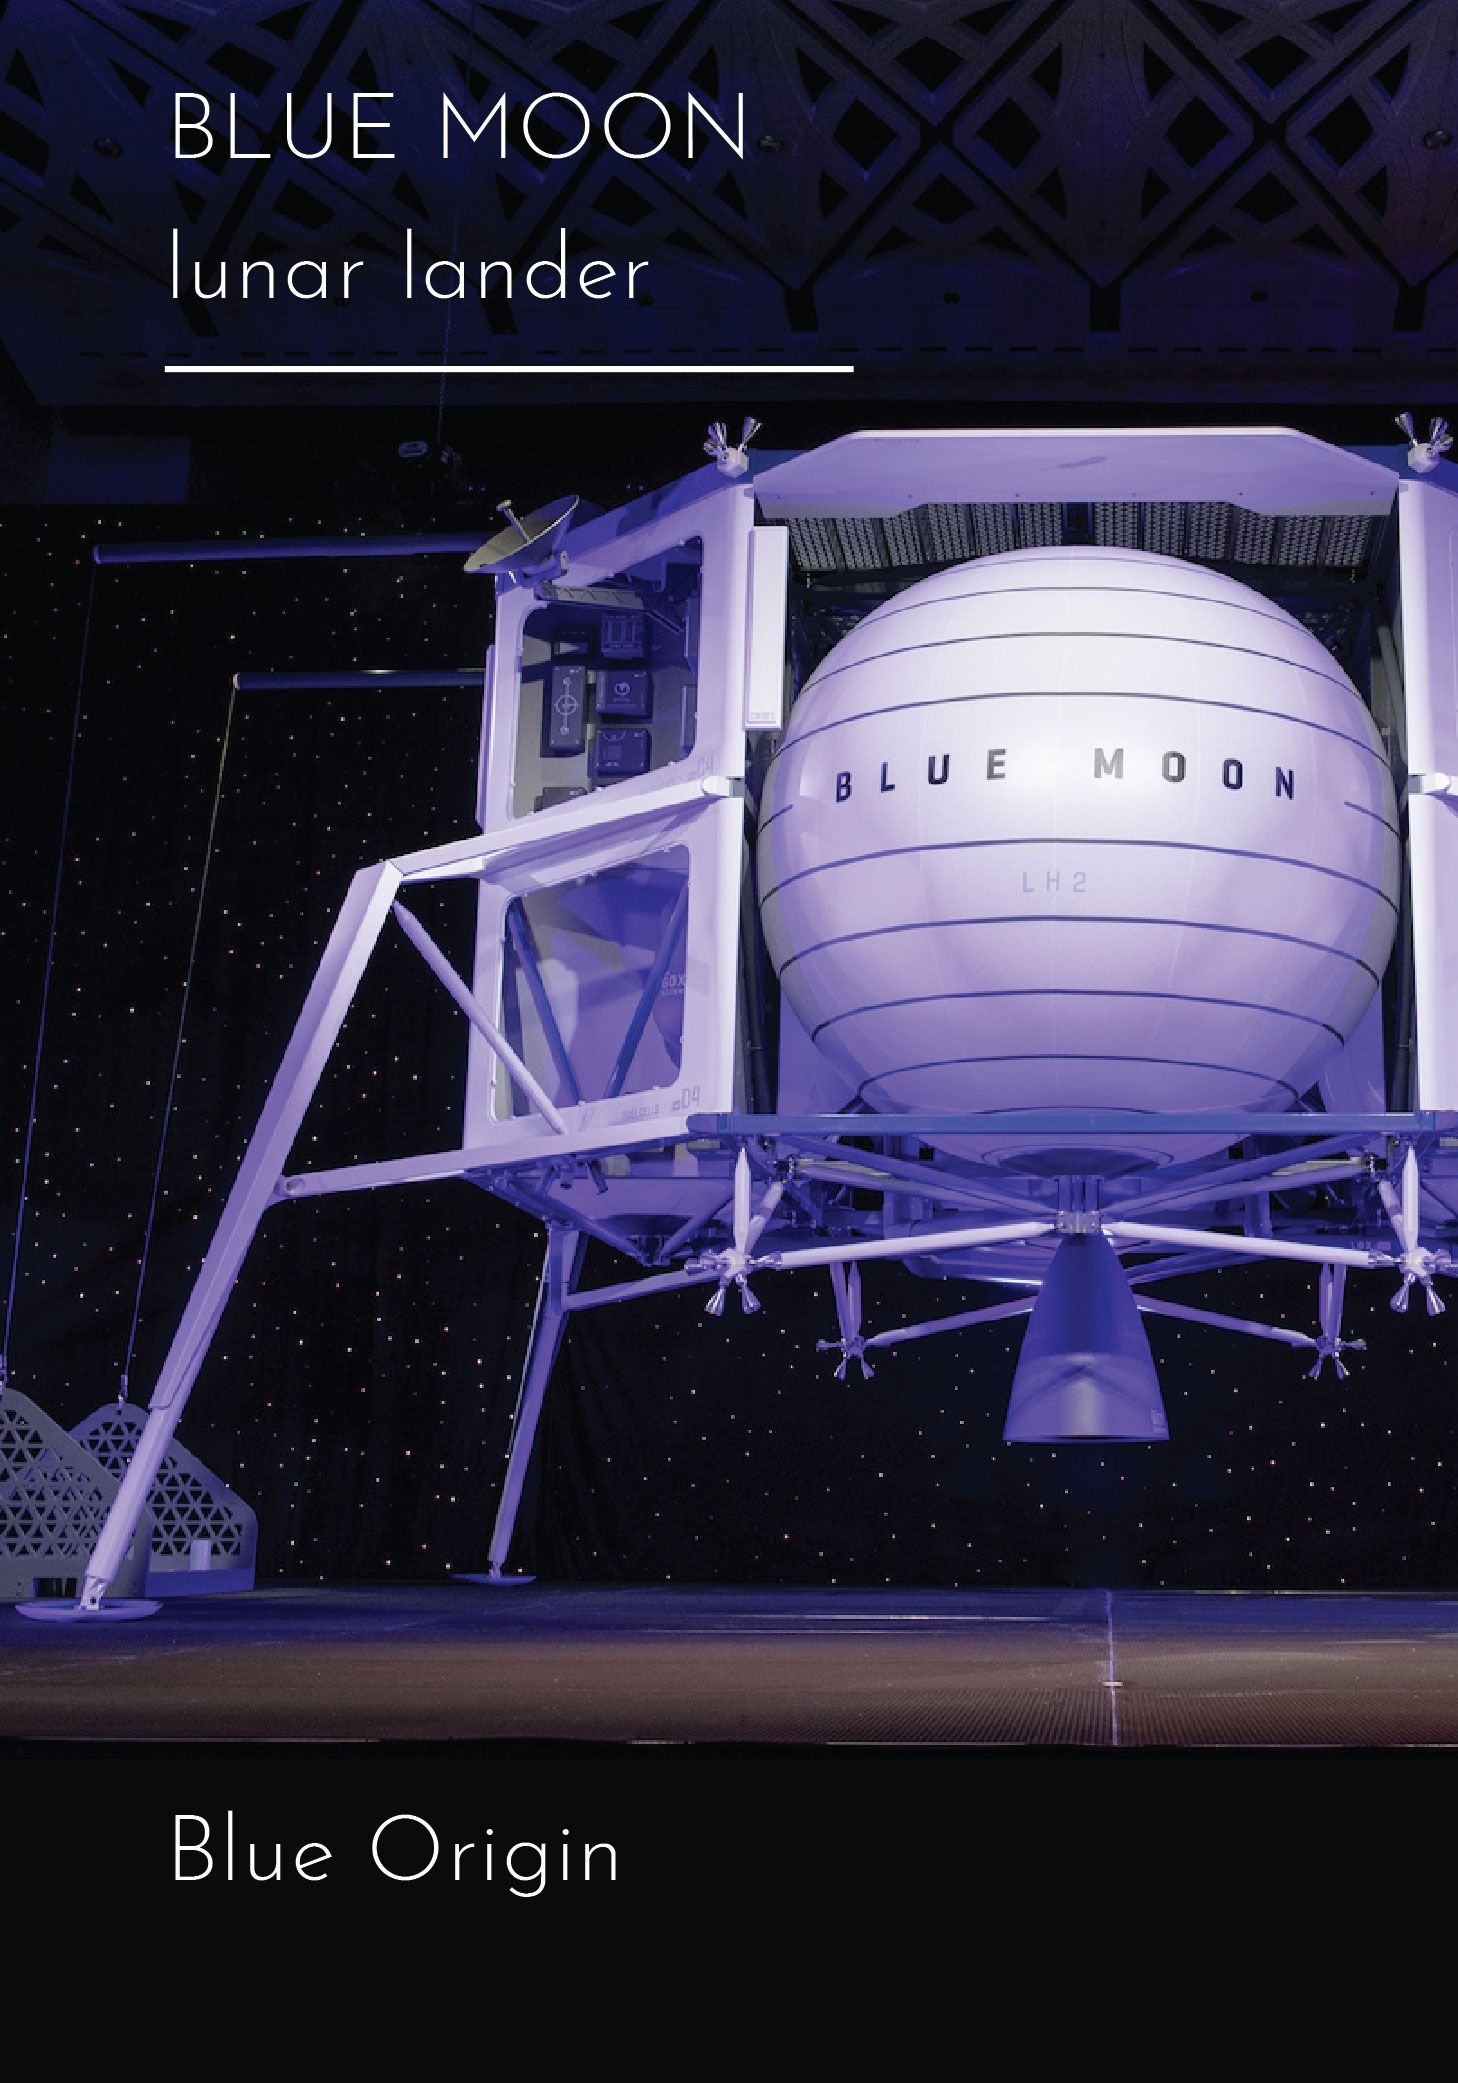 The Blue Moon Lunar Lander Is Capable Of Taking People And Payloads To The Lunar Surface Lunar Lander Blue Origin Blue Moon